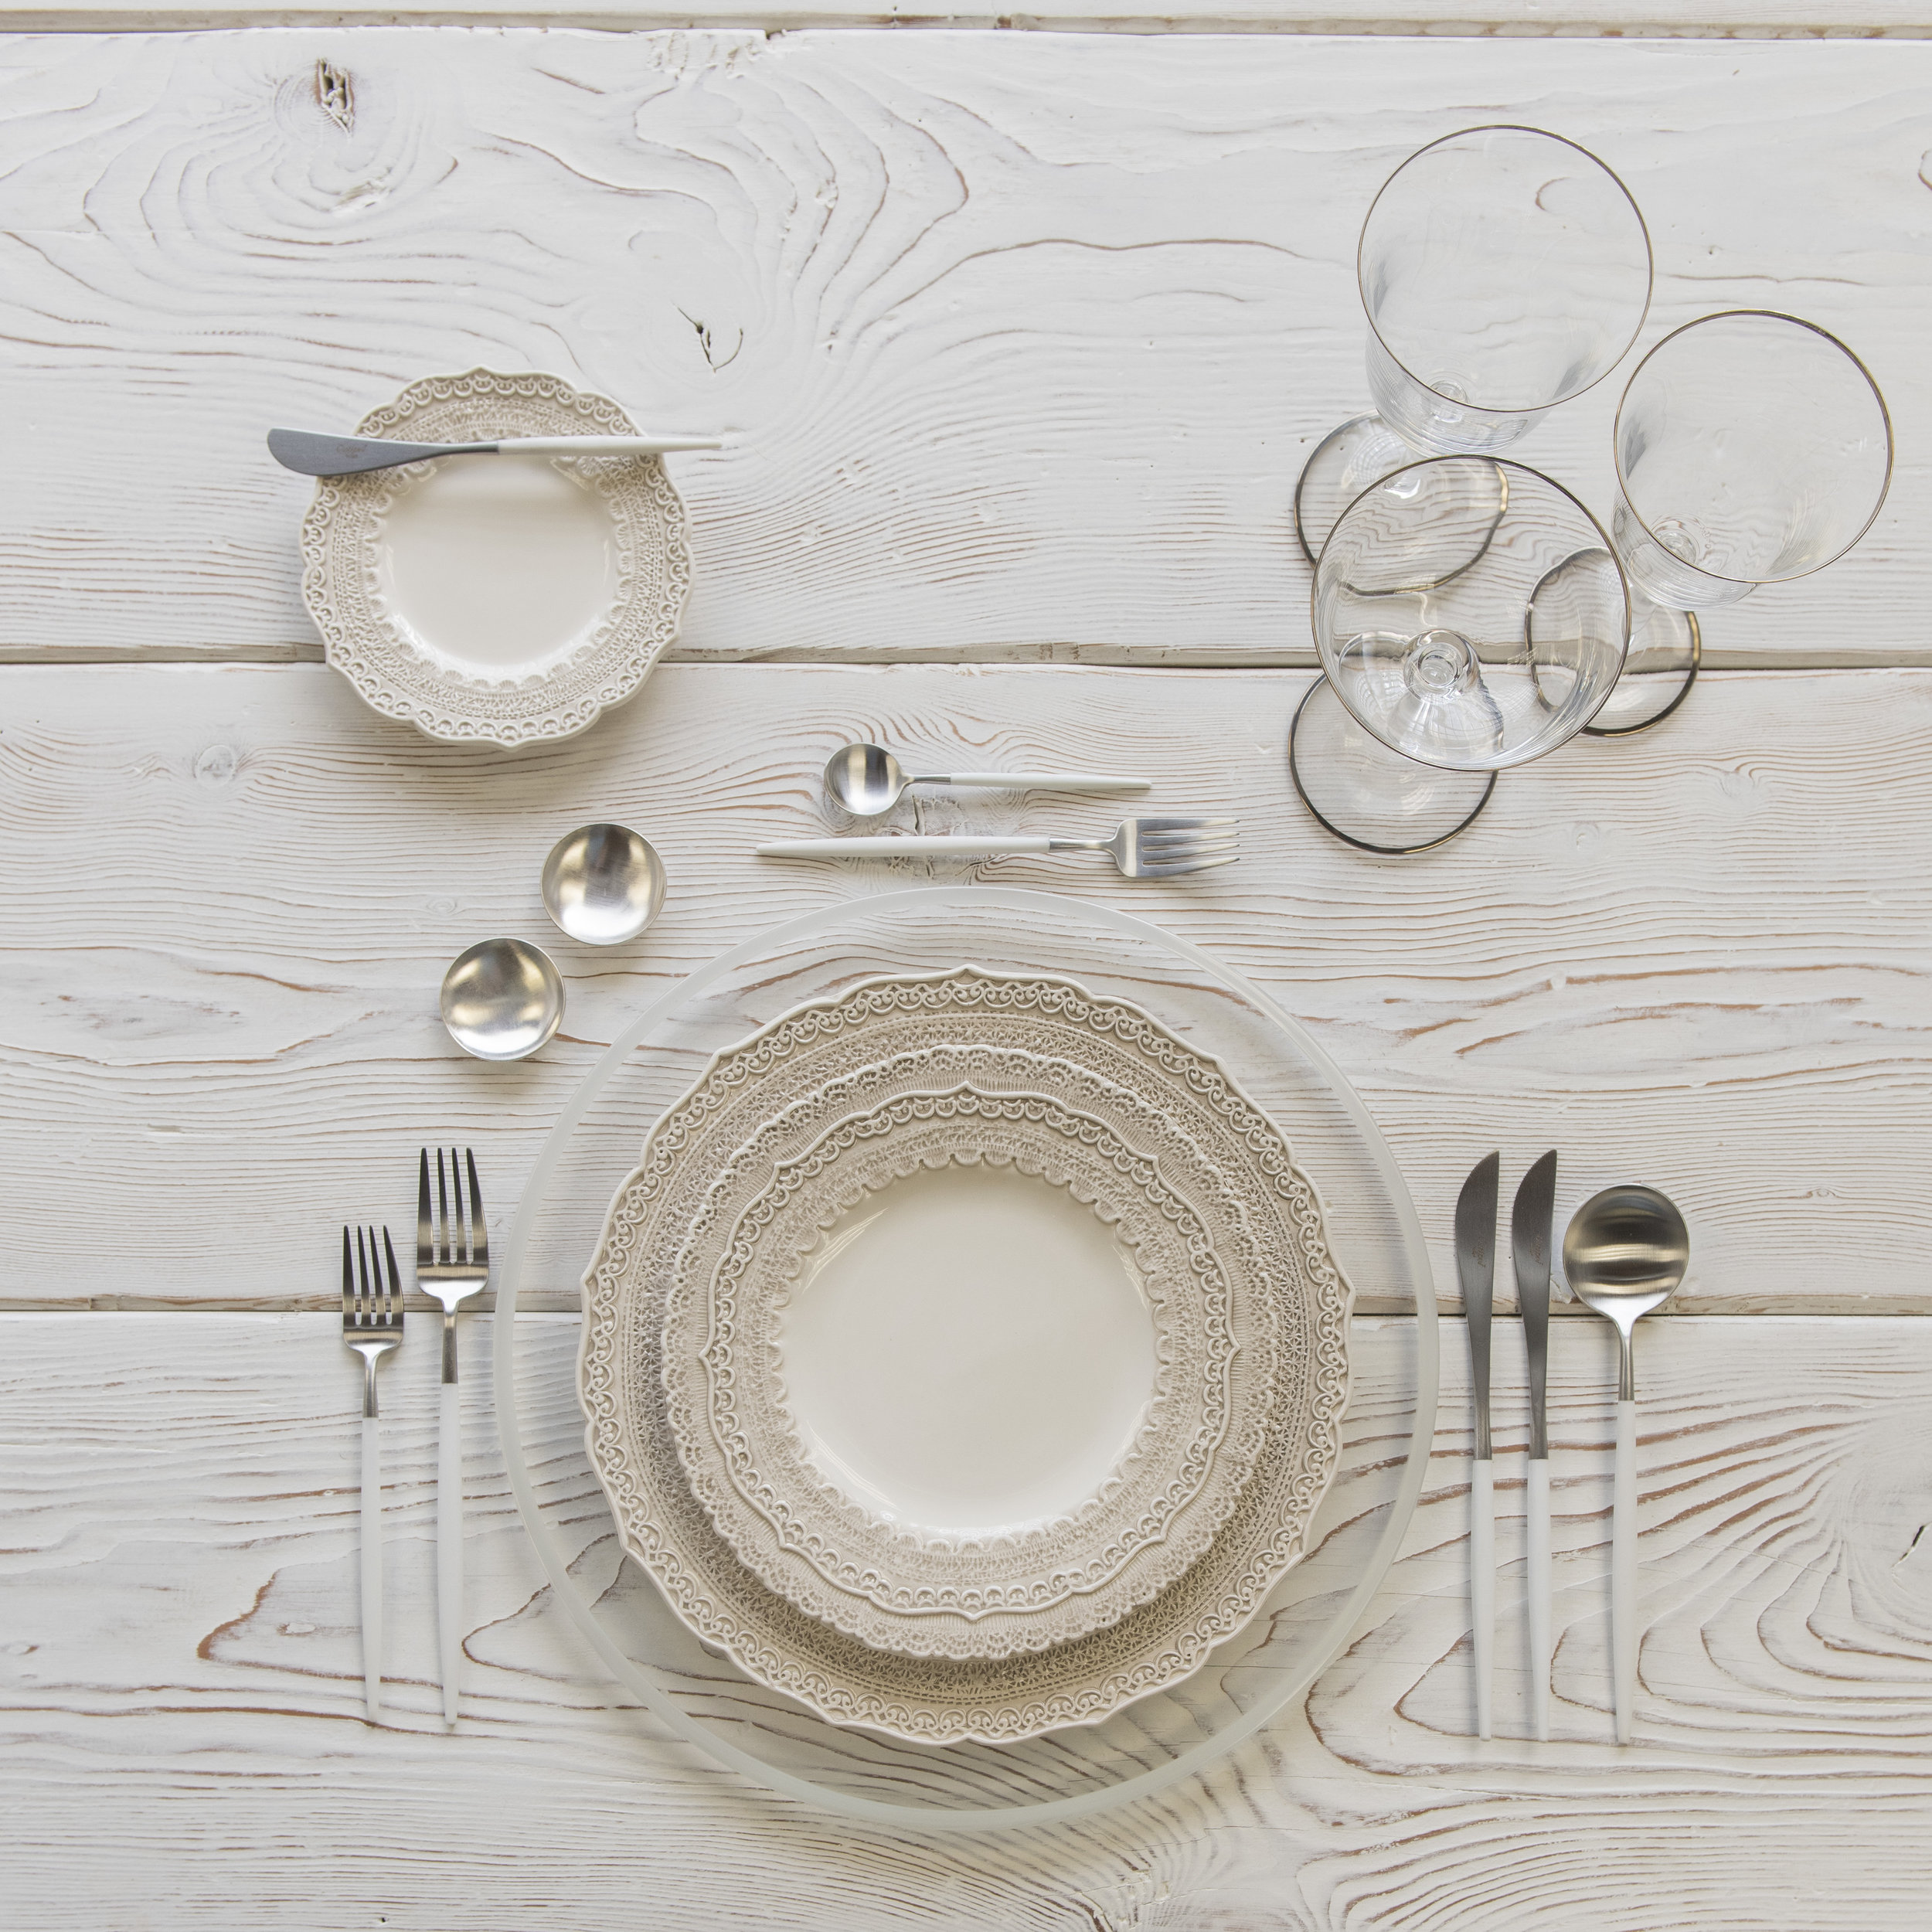 RENT: Halo Glass Chargers in Pearl + Lace Dinnerware in White + Goa Flatware in Brushed Steel/White + Chloe Platinum Rimmed Stemware + Silver Salt Cellars  SHOP:Halo Glass Chargers in Pearl + Goa Flatware in Brushed Steel/White + Chloe Platinum Rimmed Stemware